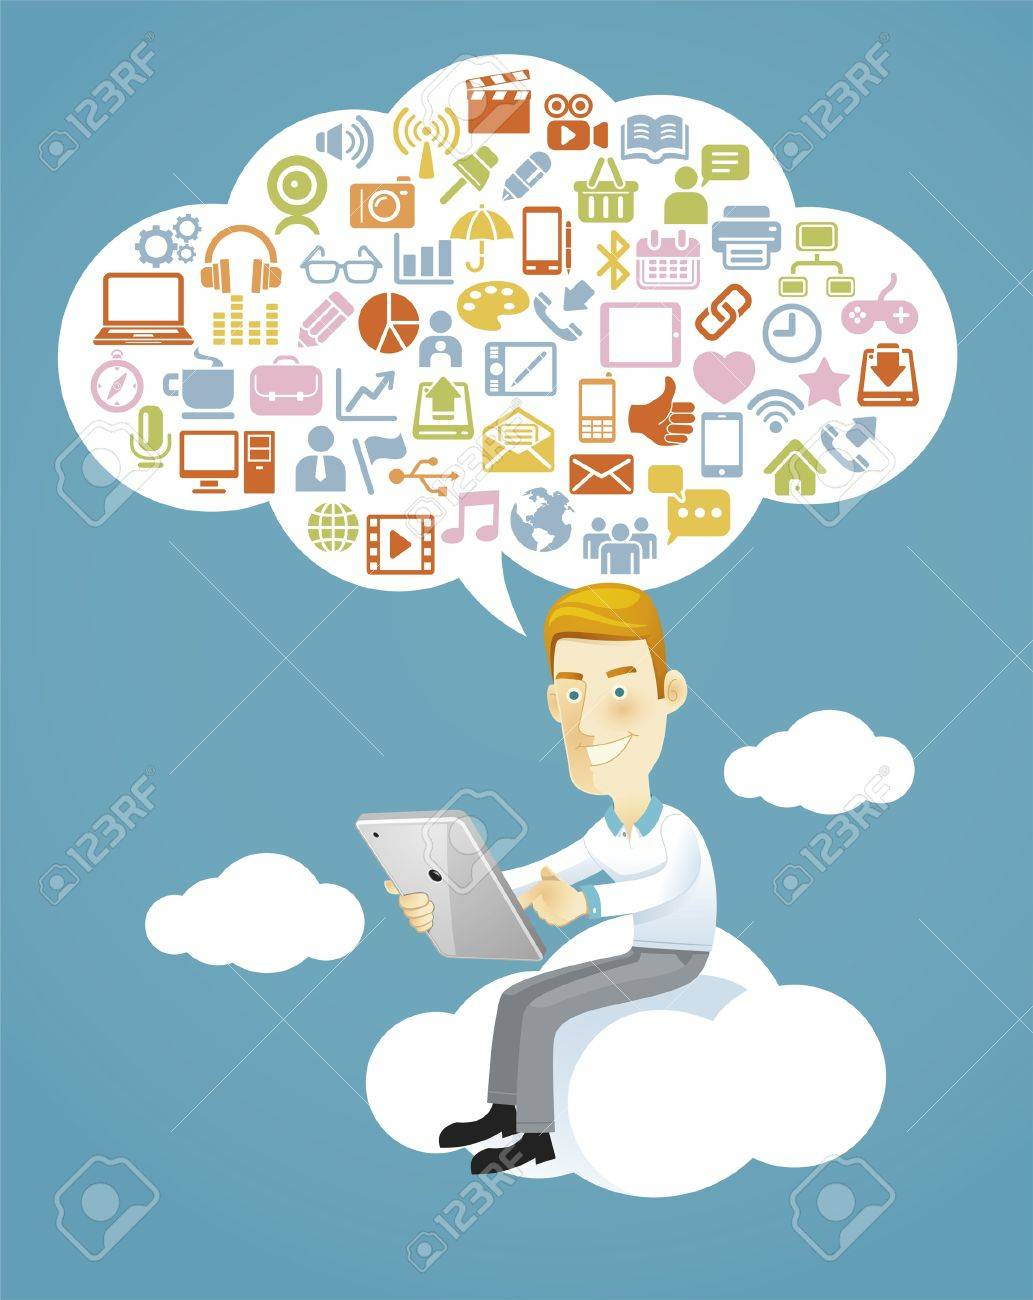 Business man using a tablet sitting on a cloud with social media, communication icons Stock Vector - 18759042